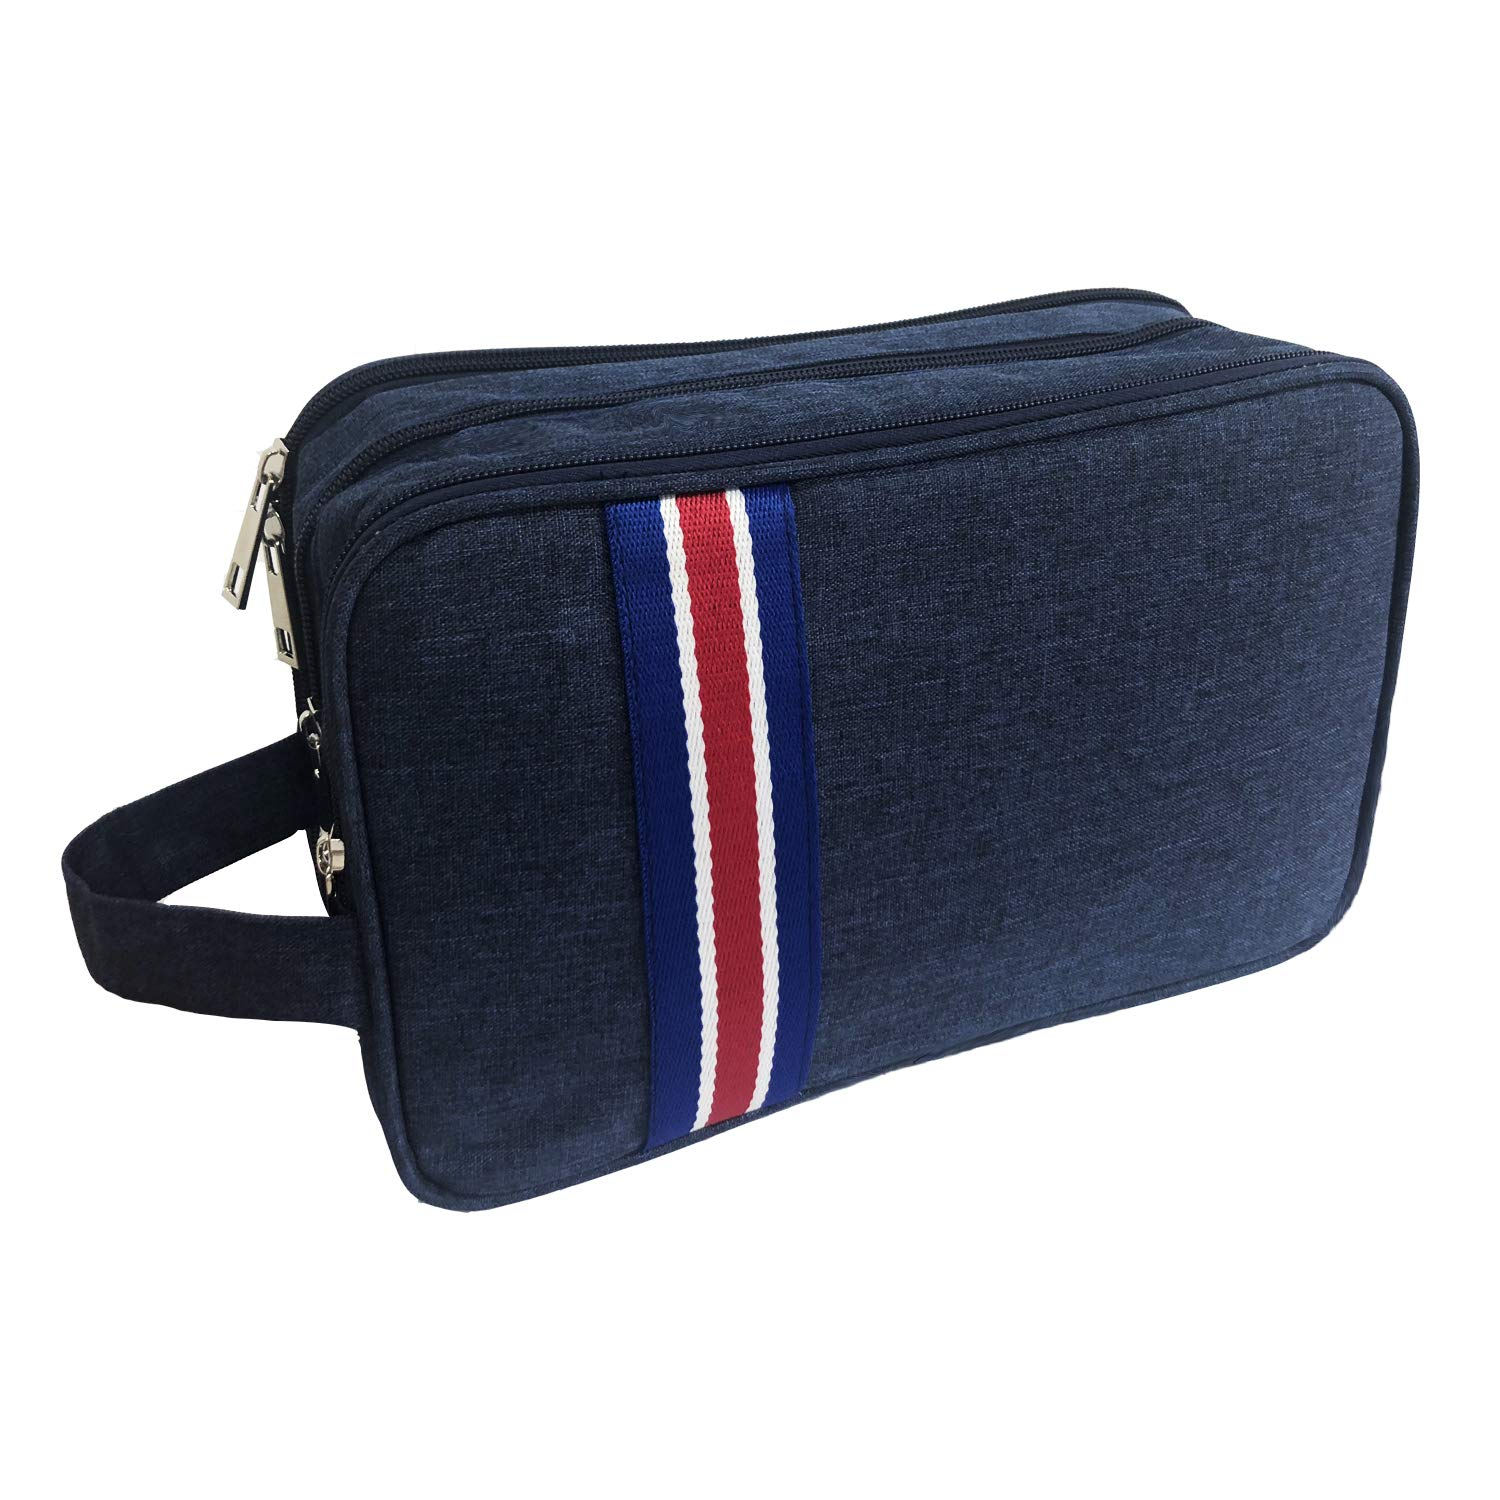 Travel Toiletry Wash Bag for Mens Womens, Handing Waterproof Dopp Kit for Men Hanging Travel Shaving Wash Bags Toiletries Storage Accessories in Carry-On Luggage